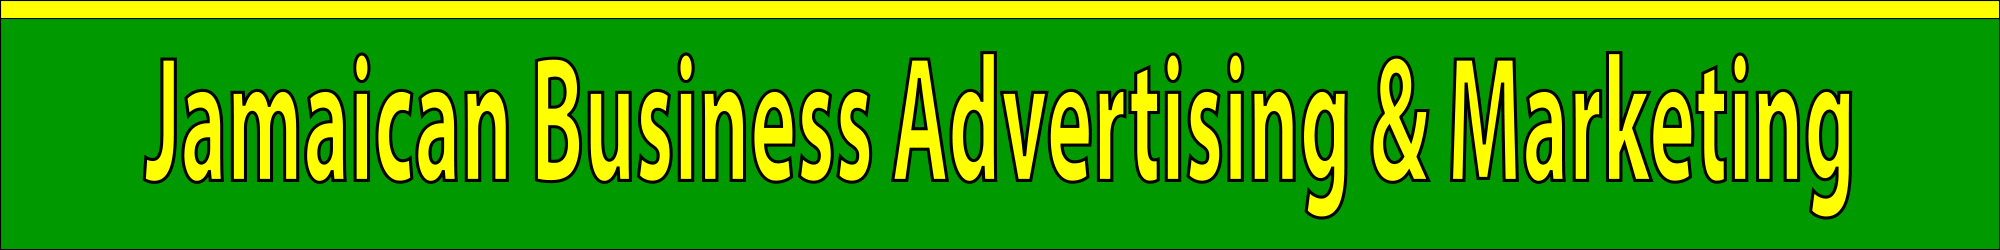 Jamaican Business Advertising & Marketing